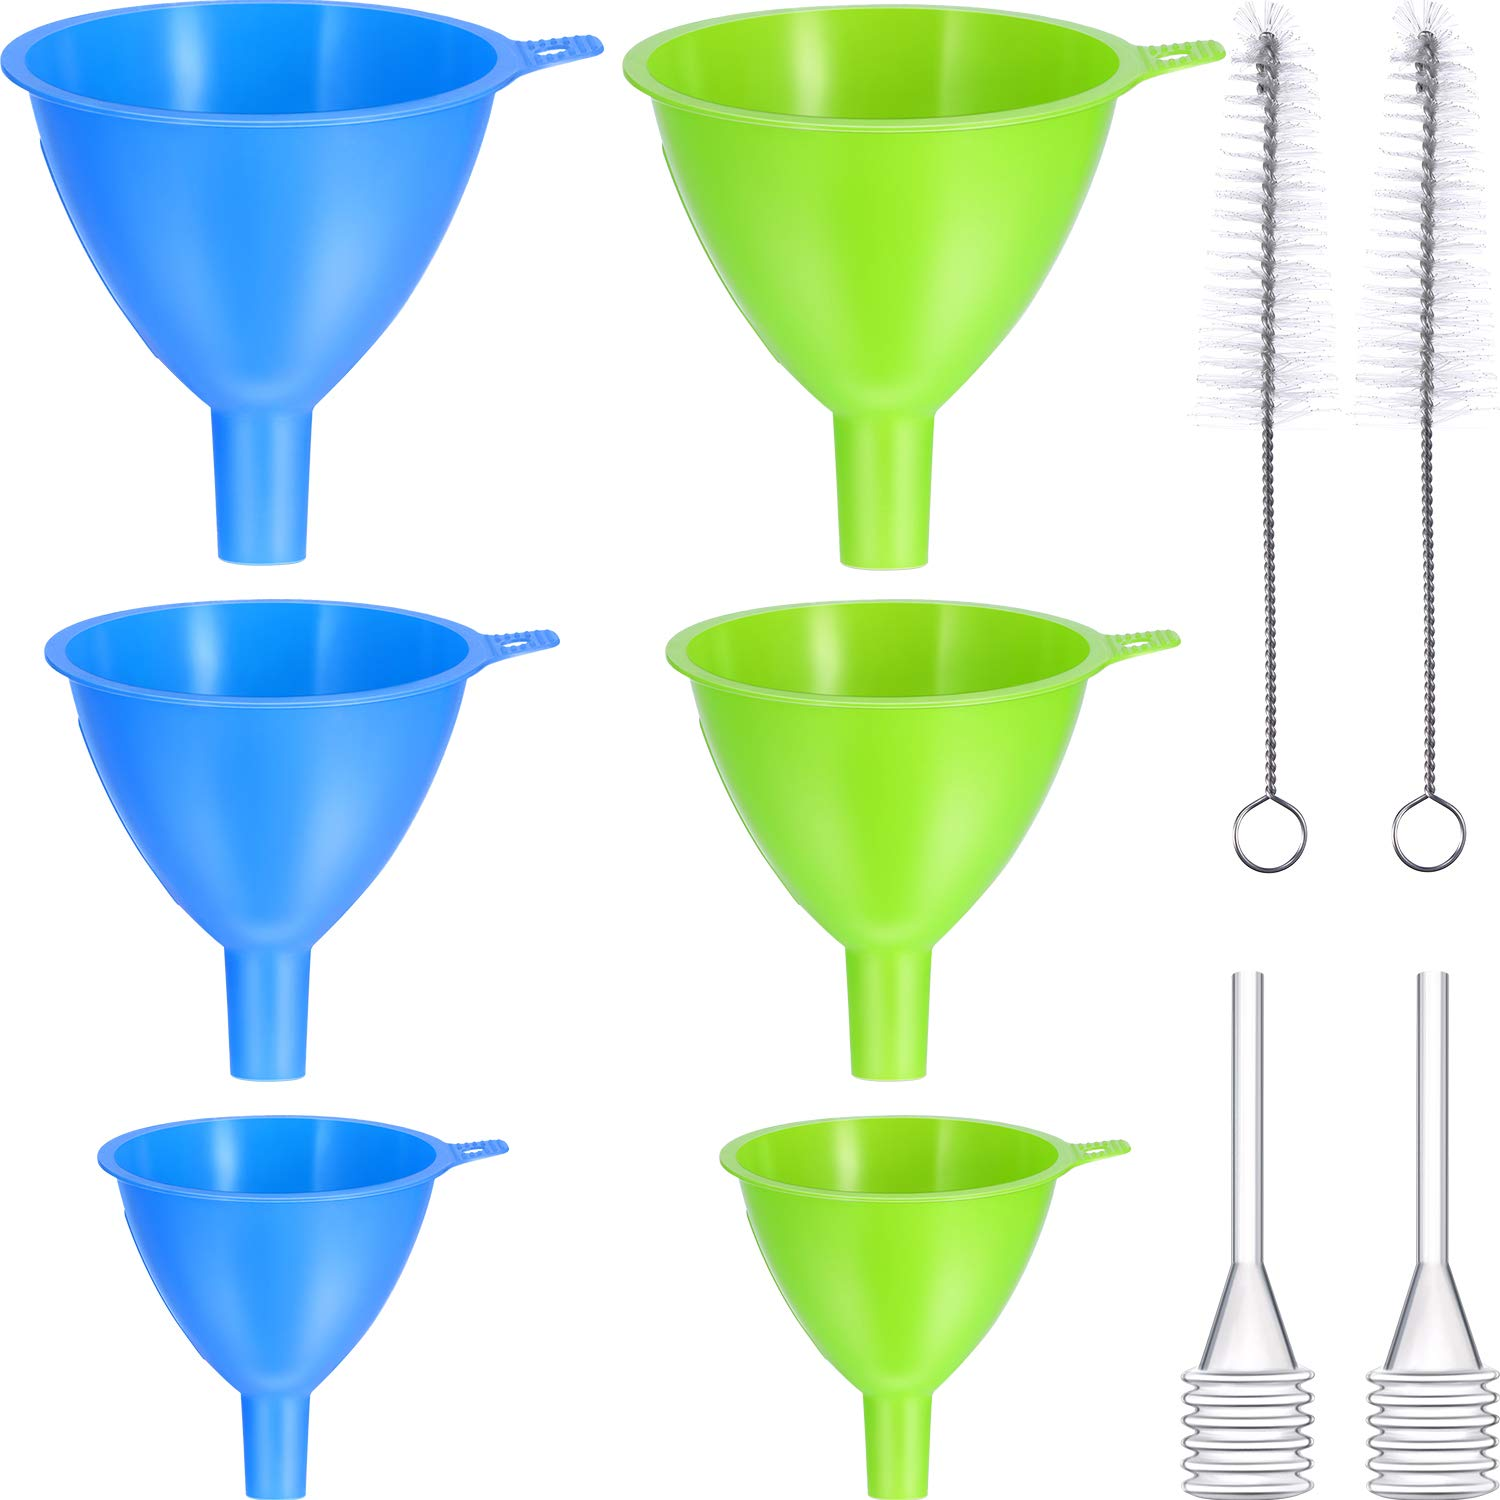 6 Pieces Kitchen Funnel Plastic Filter Funnel for Liquid Plastic Funnel Set with 2 Pieces Cleaning Brush and 2 Pieces Dropper for Liquid Transfer Tatuo